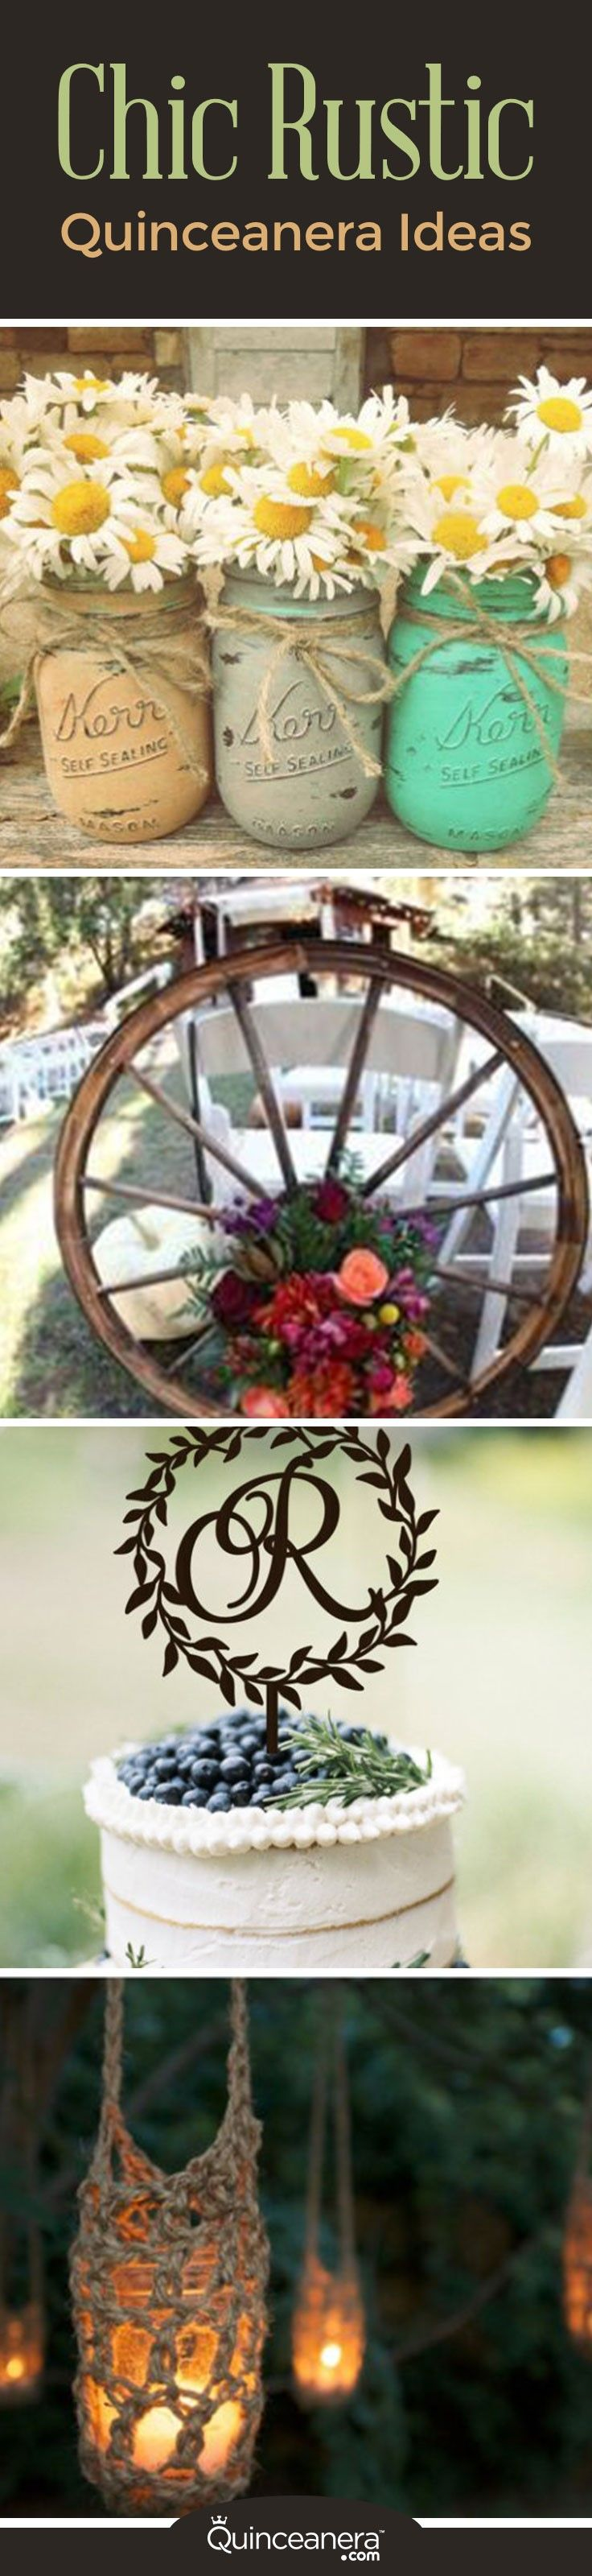 Do you like country music, lace, and vintage decor? Then you may be interested in having a country-inspired quinceanera! Check out our chic rustic quinceanera ideas and inspiration here. One of the benefits of having a rustic quinceanera is that many of the decorations can be done by yourself. - See more at: http://www.quinceanera.com/decorations-themes/chic-rustic-quinceanera-ideas/#sthash.ooDAqknX.dpuf